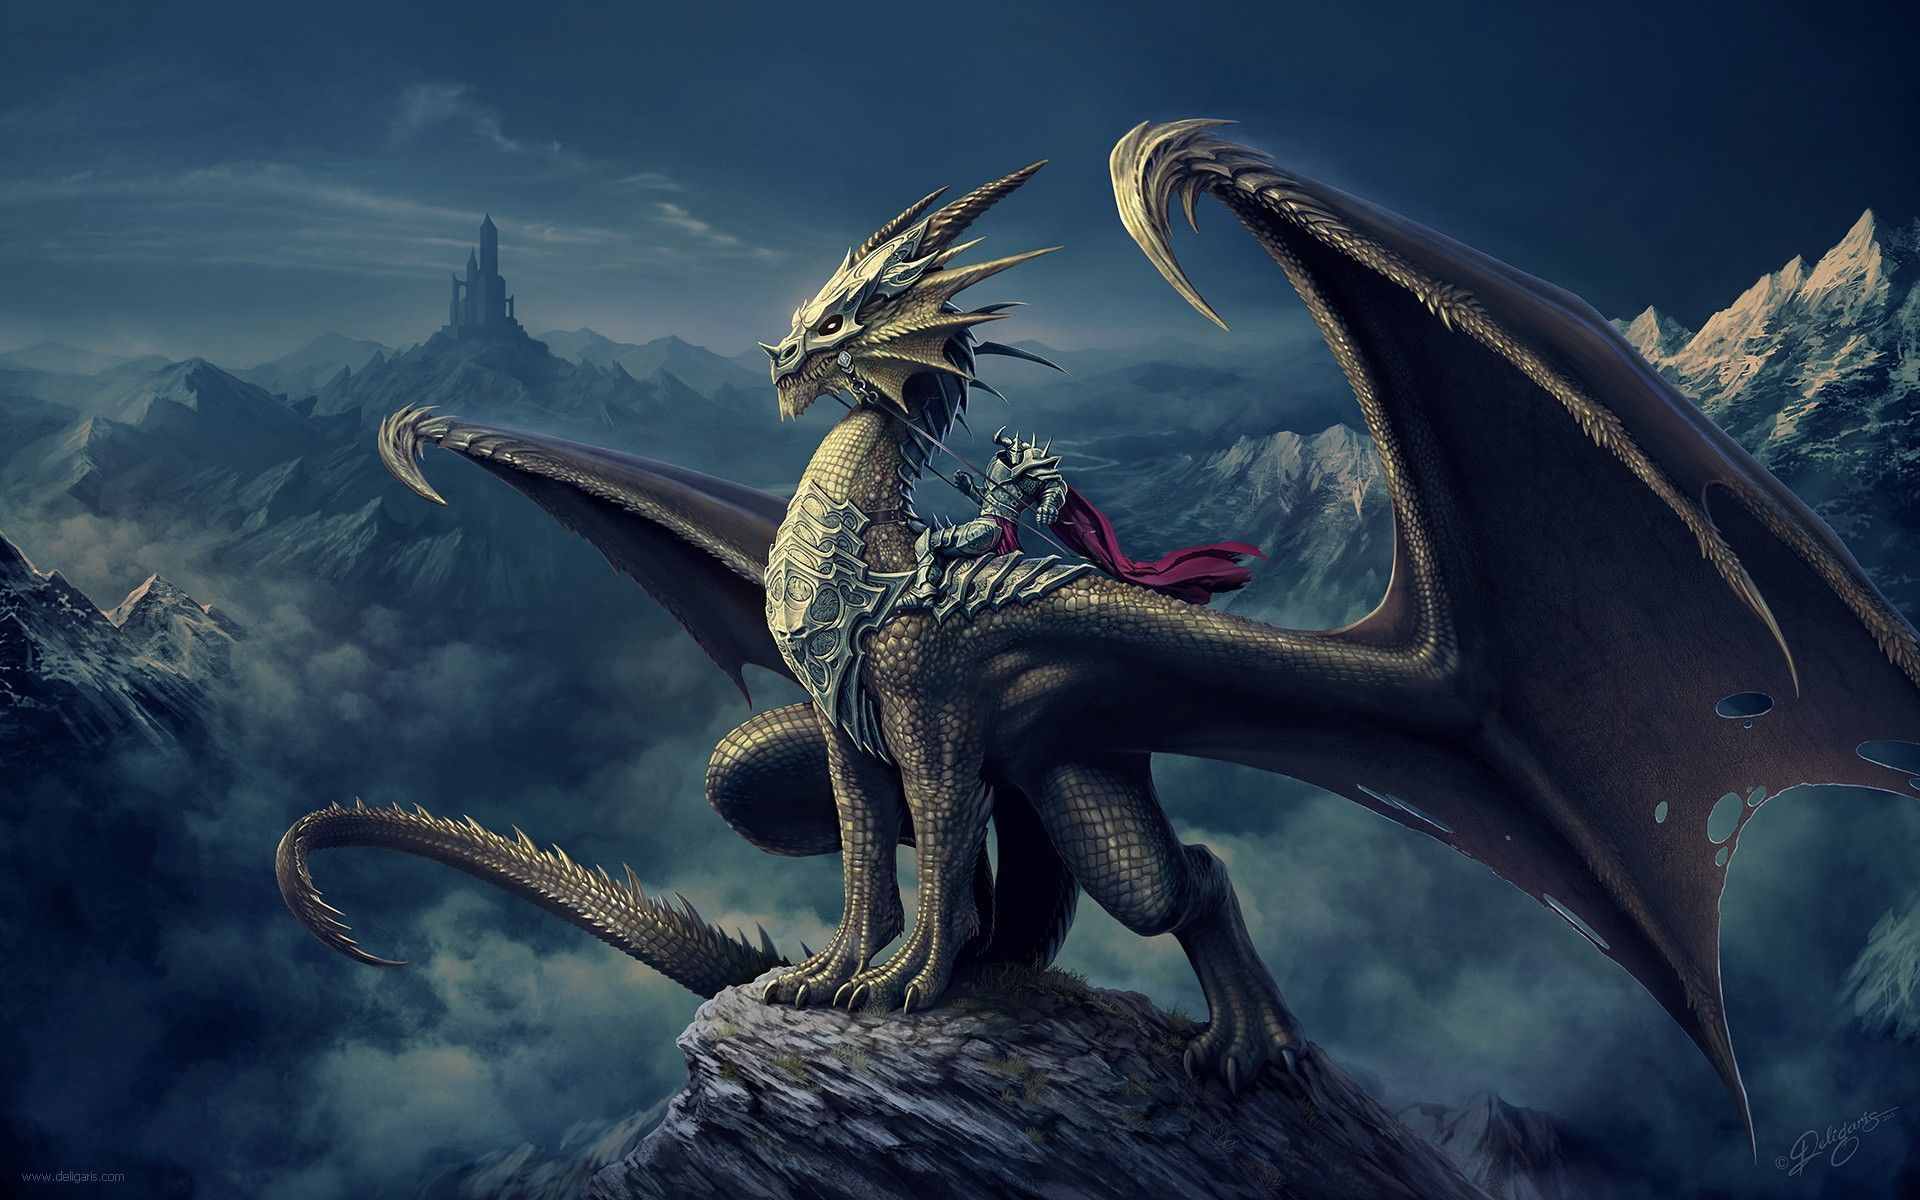 4K Ultra HD Dragon Wallpapers - Top Free 4K Ultra HD Dragon